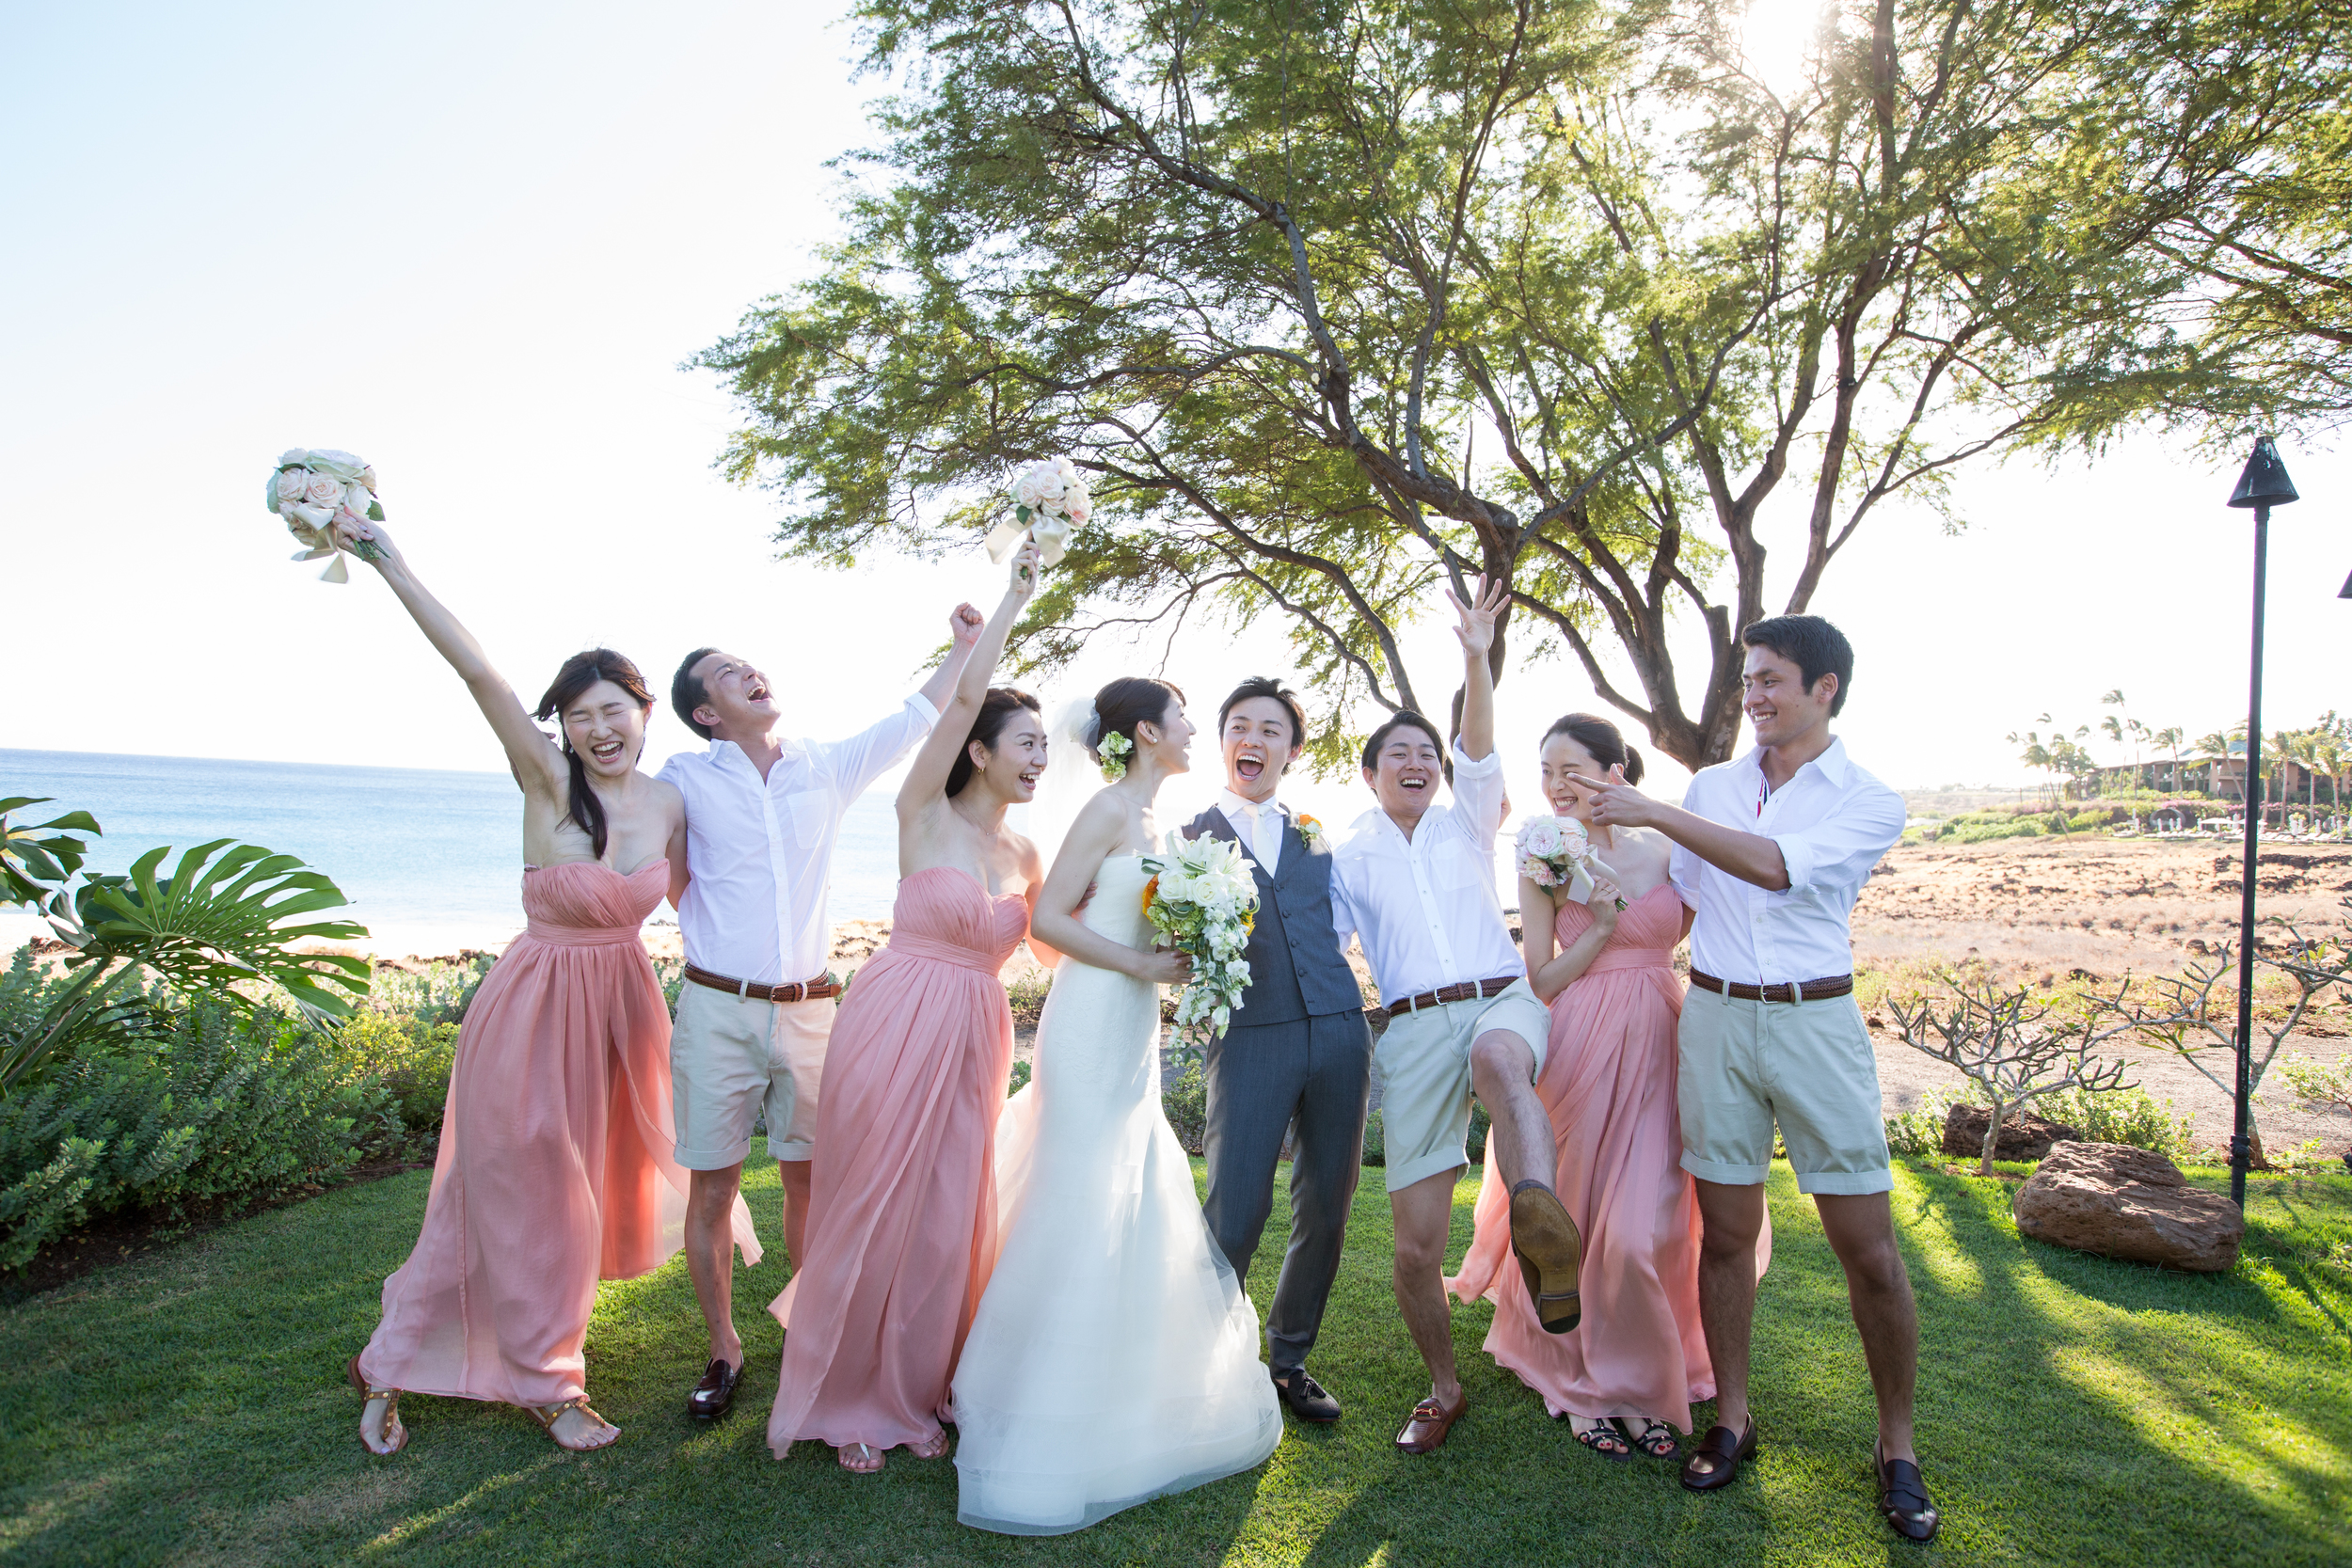 coral weddings hawaii wedding photographer pacific dream photography